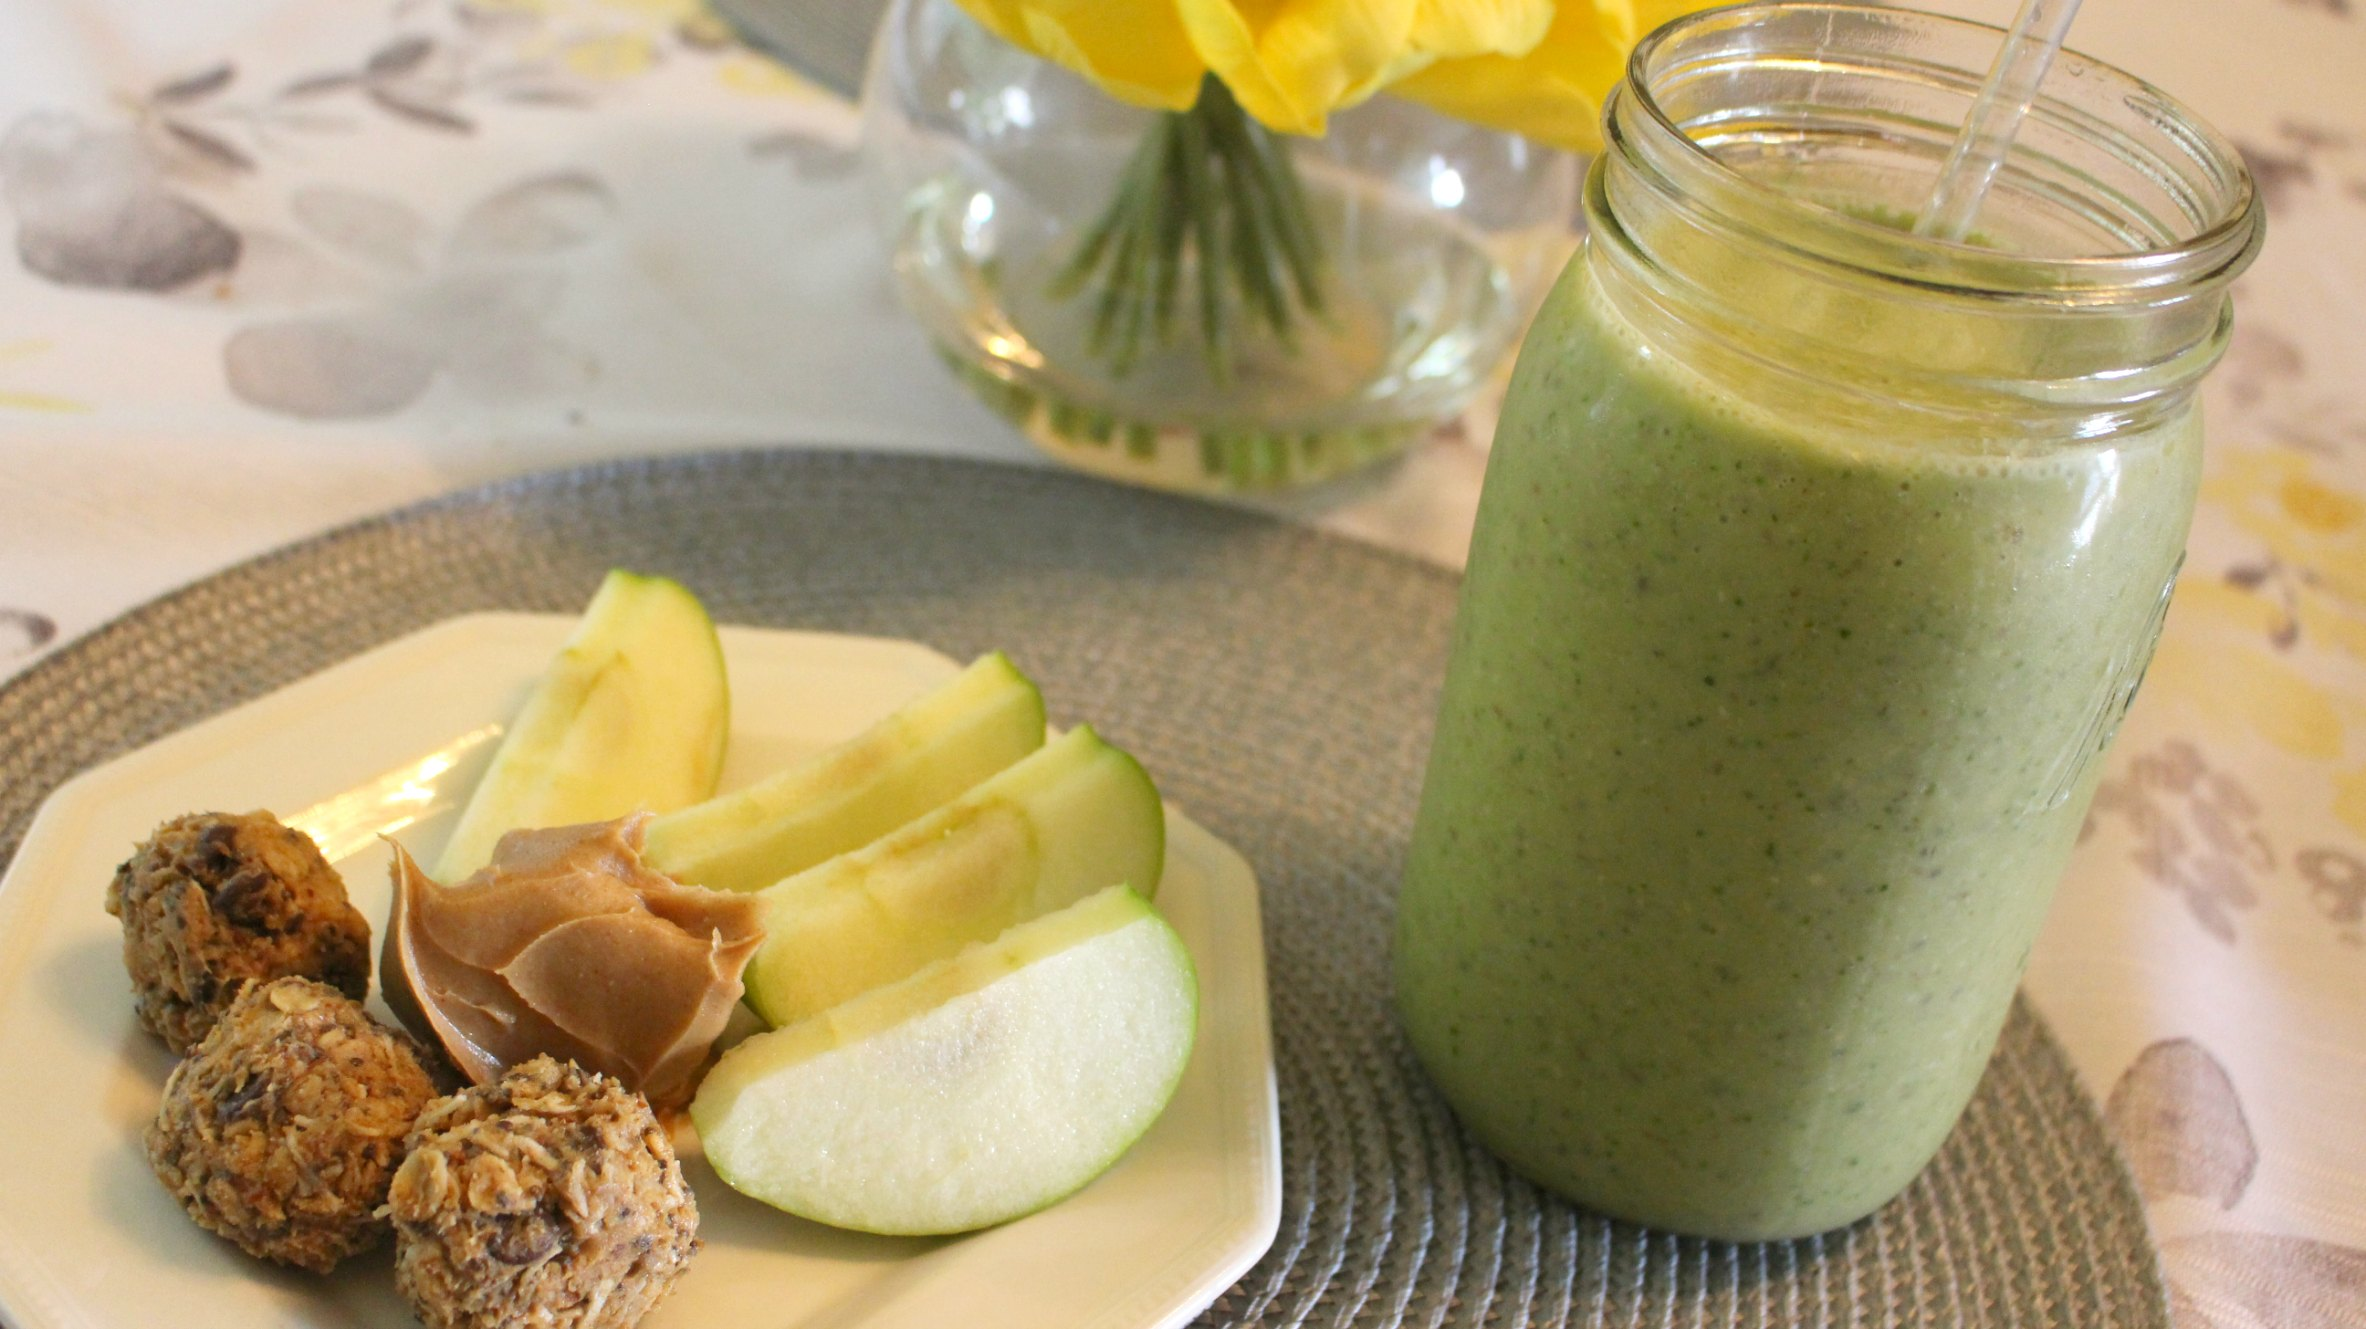 Lactation boosting recipe for breastfeeding moms. Tasty green smoothie to help boost milk production.